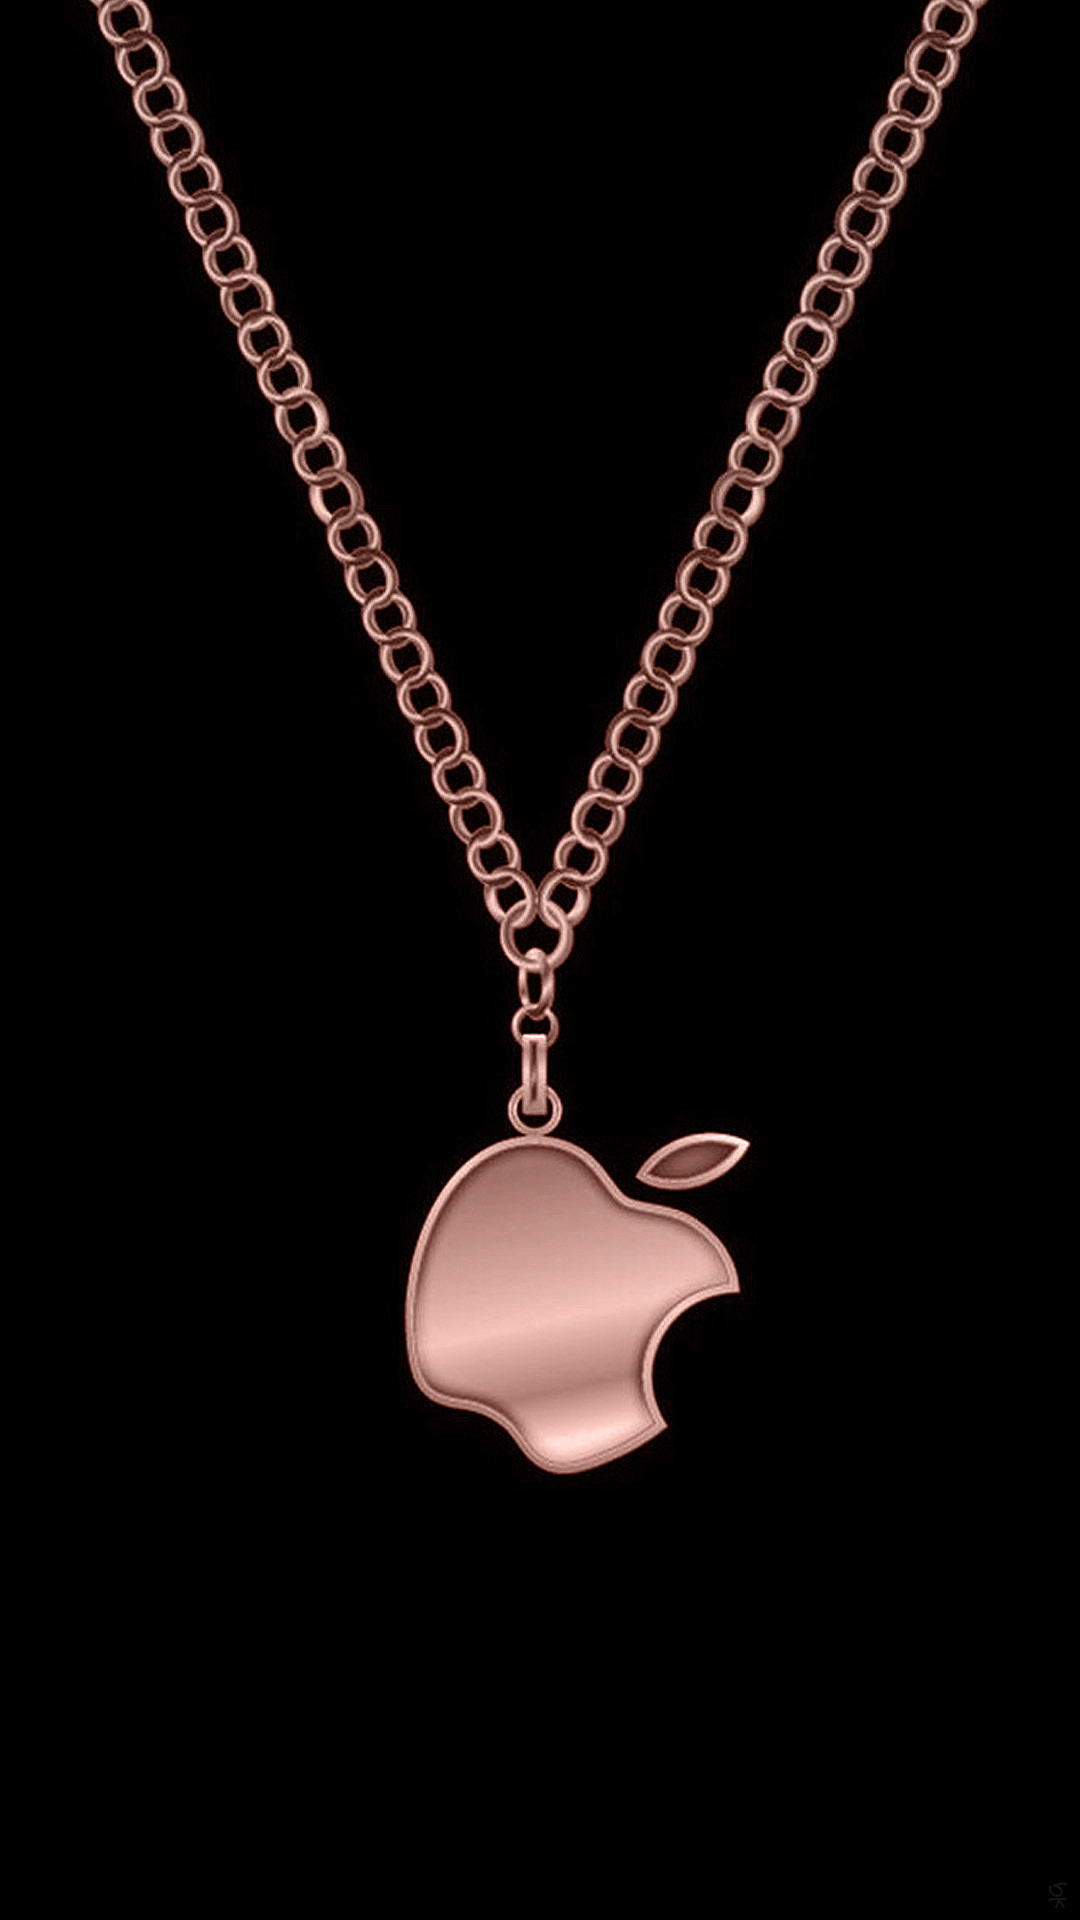 6 Plus Rose Gold Apple. Iphone BackgroundsIphone …